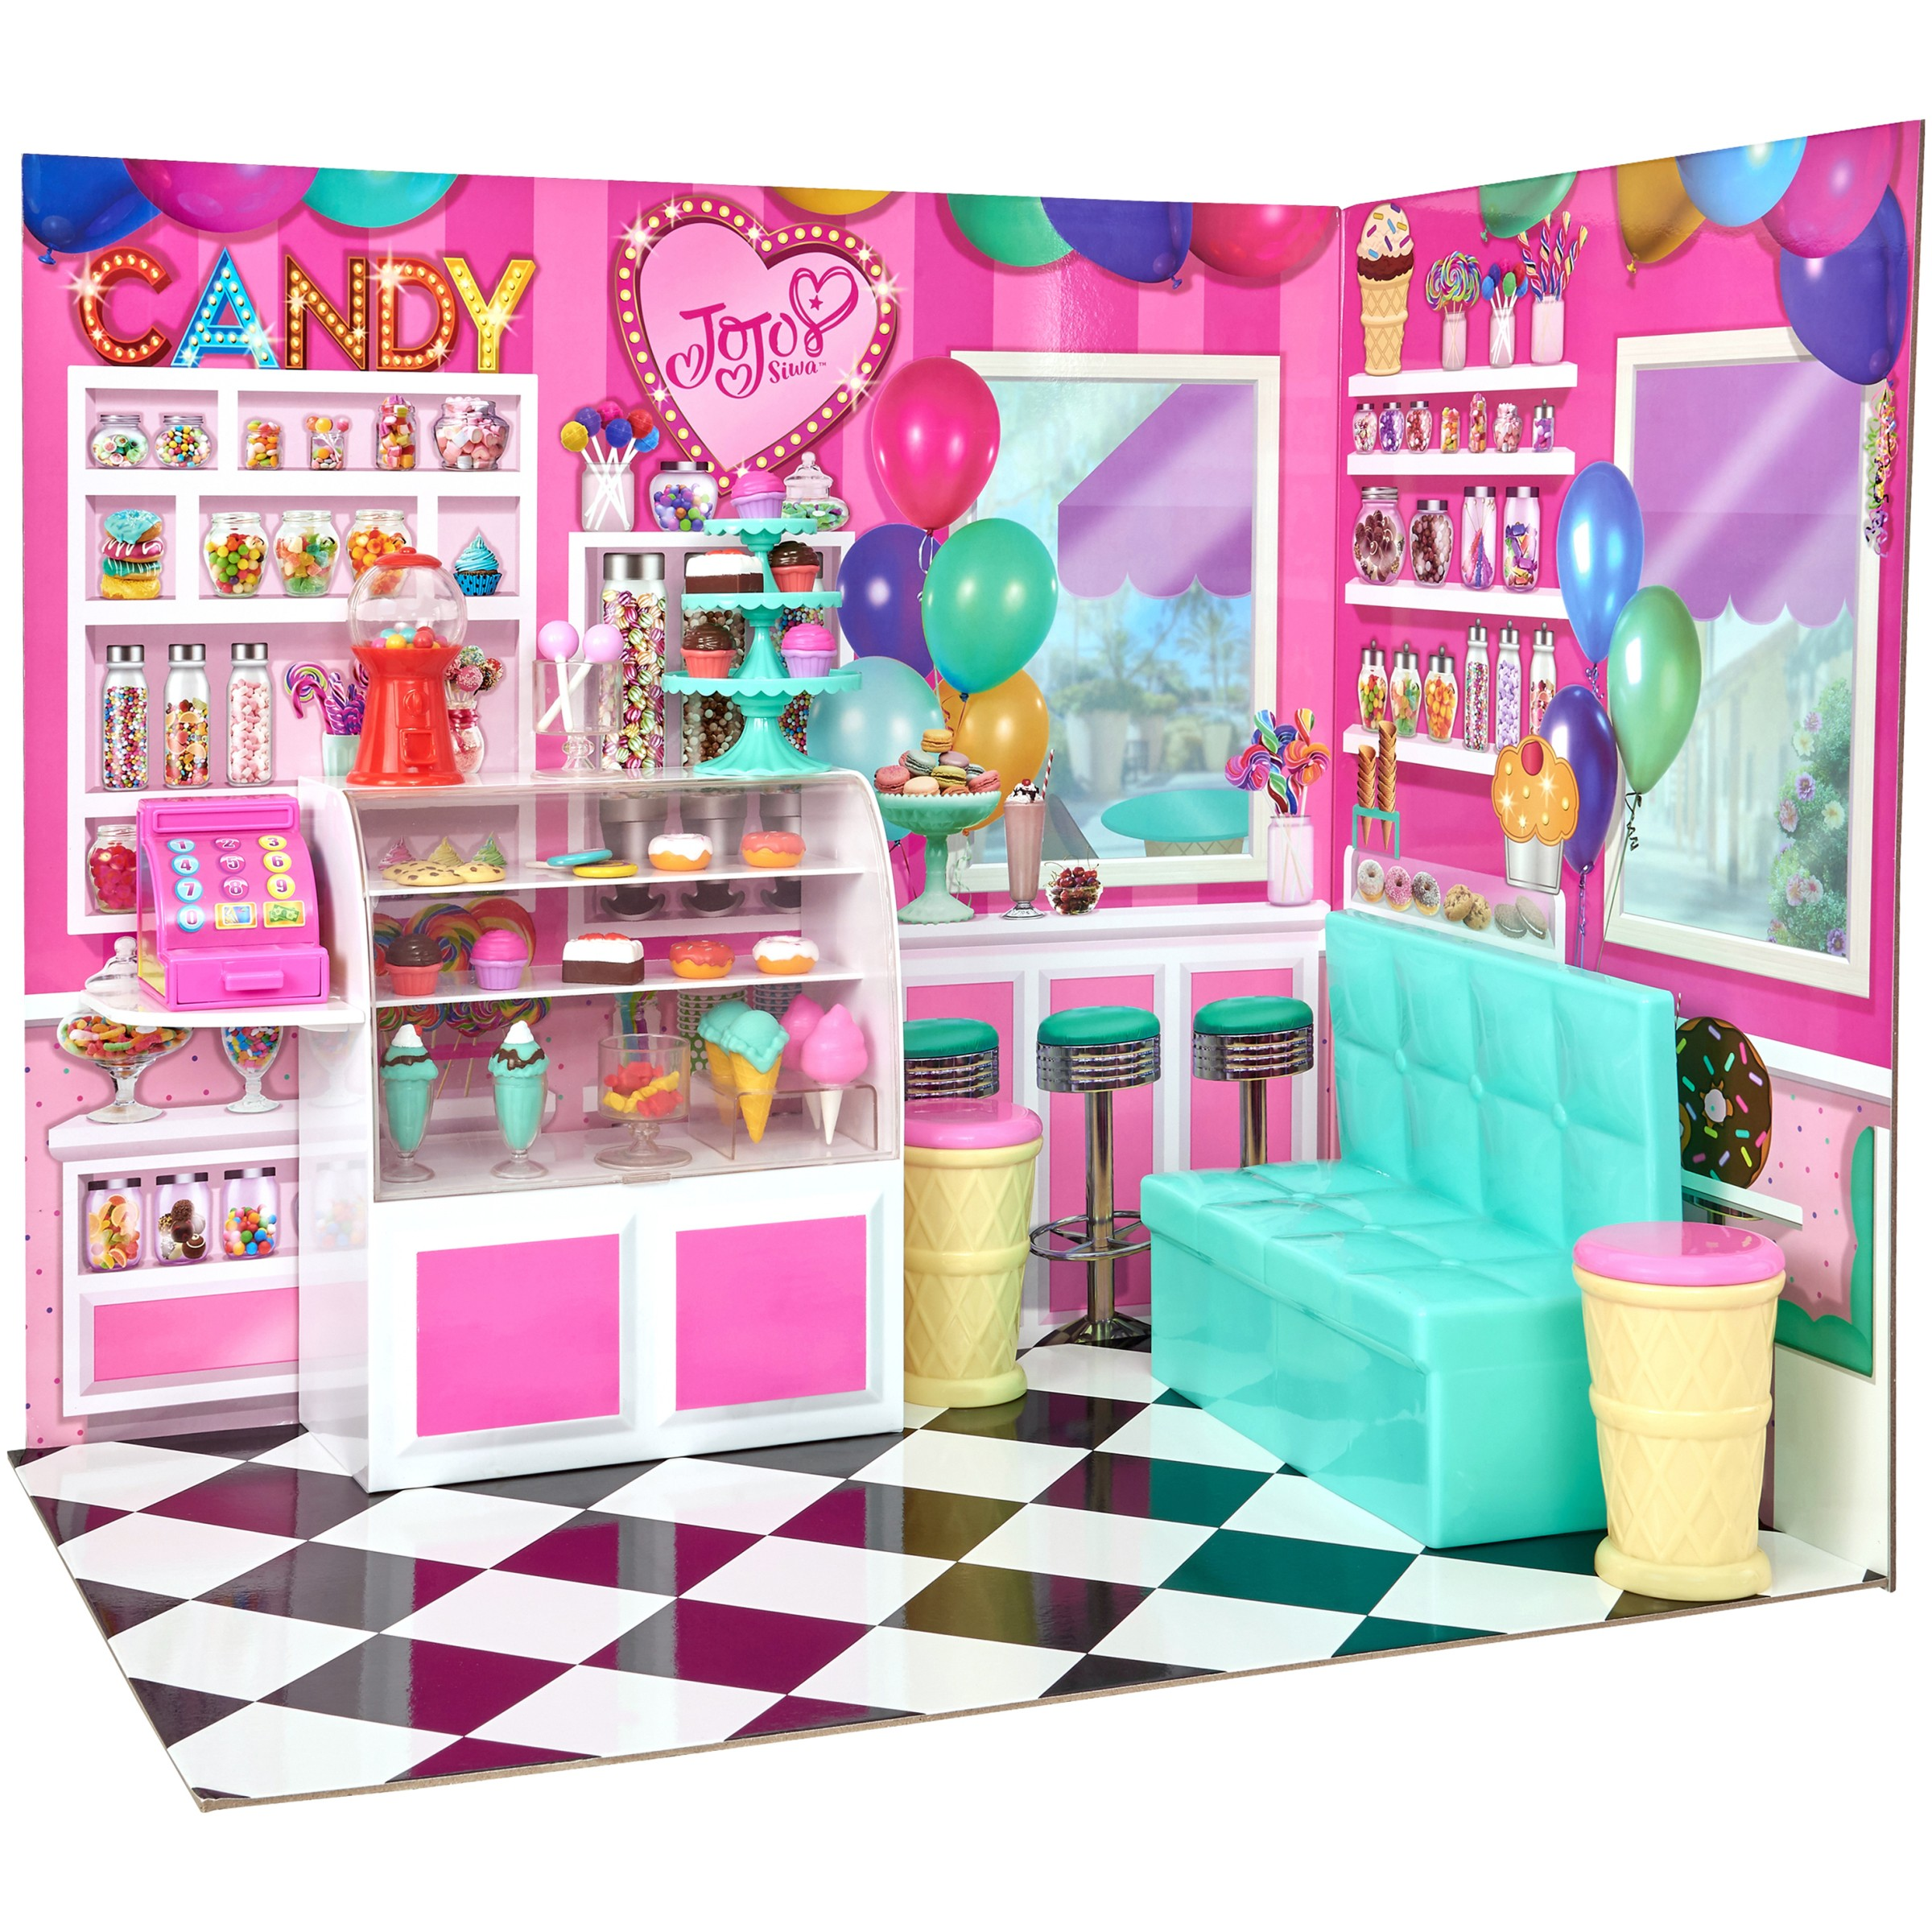 My Life As Jojo Candy Shop Play Set, Vibrantly Colored for Interest